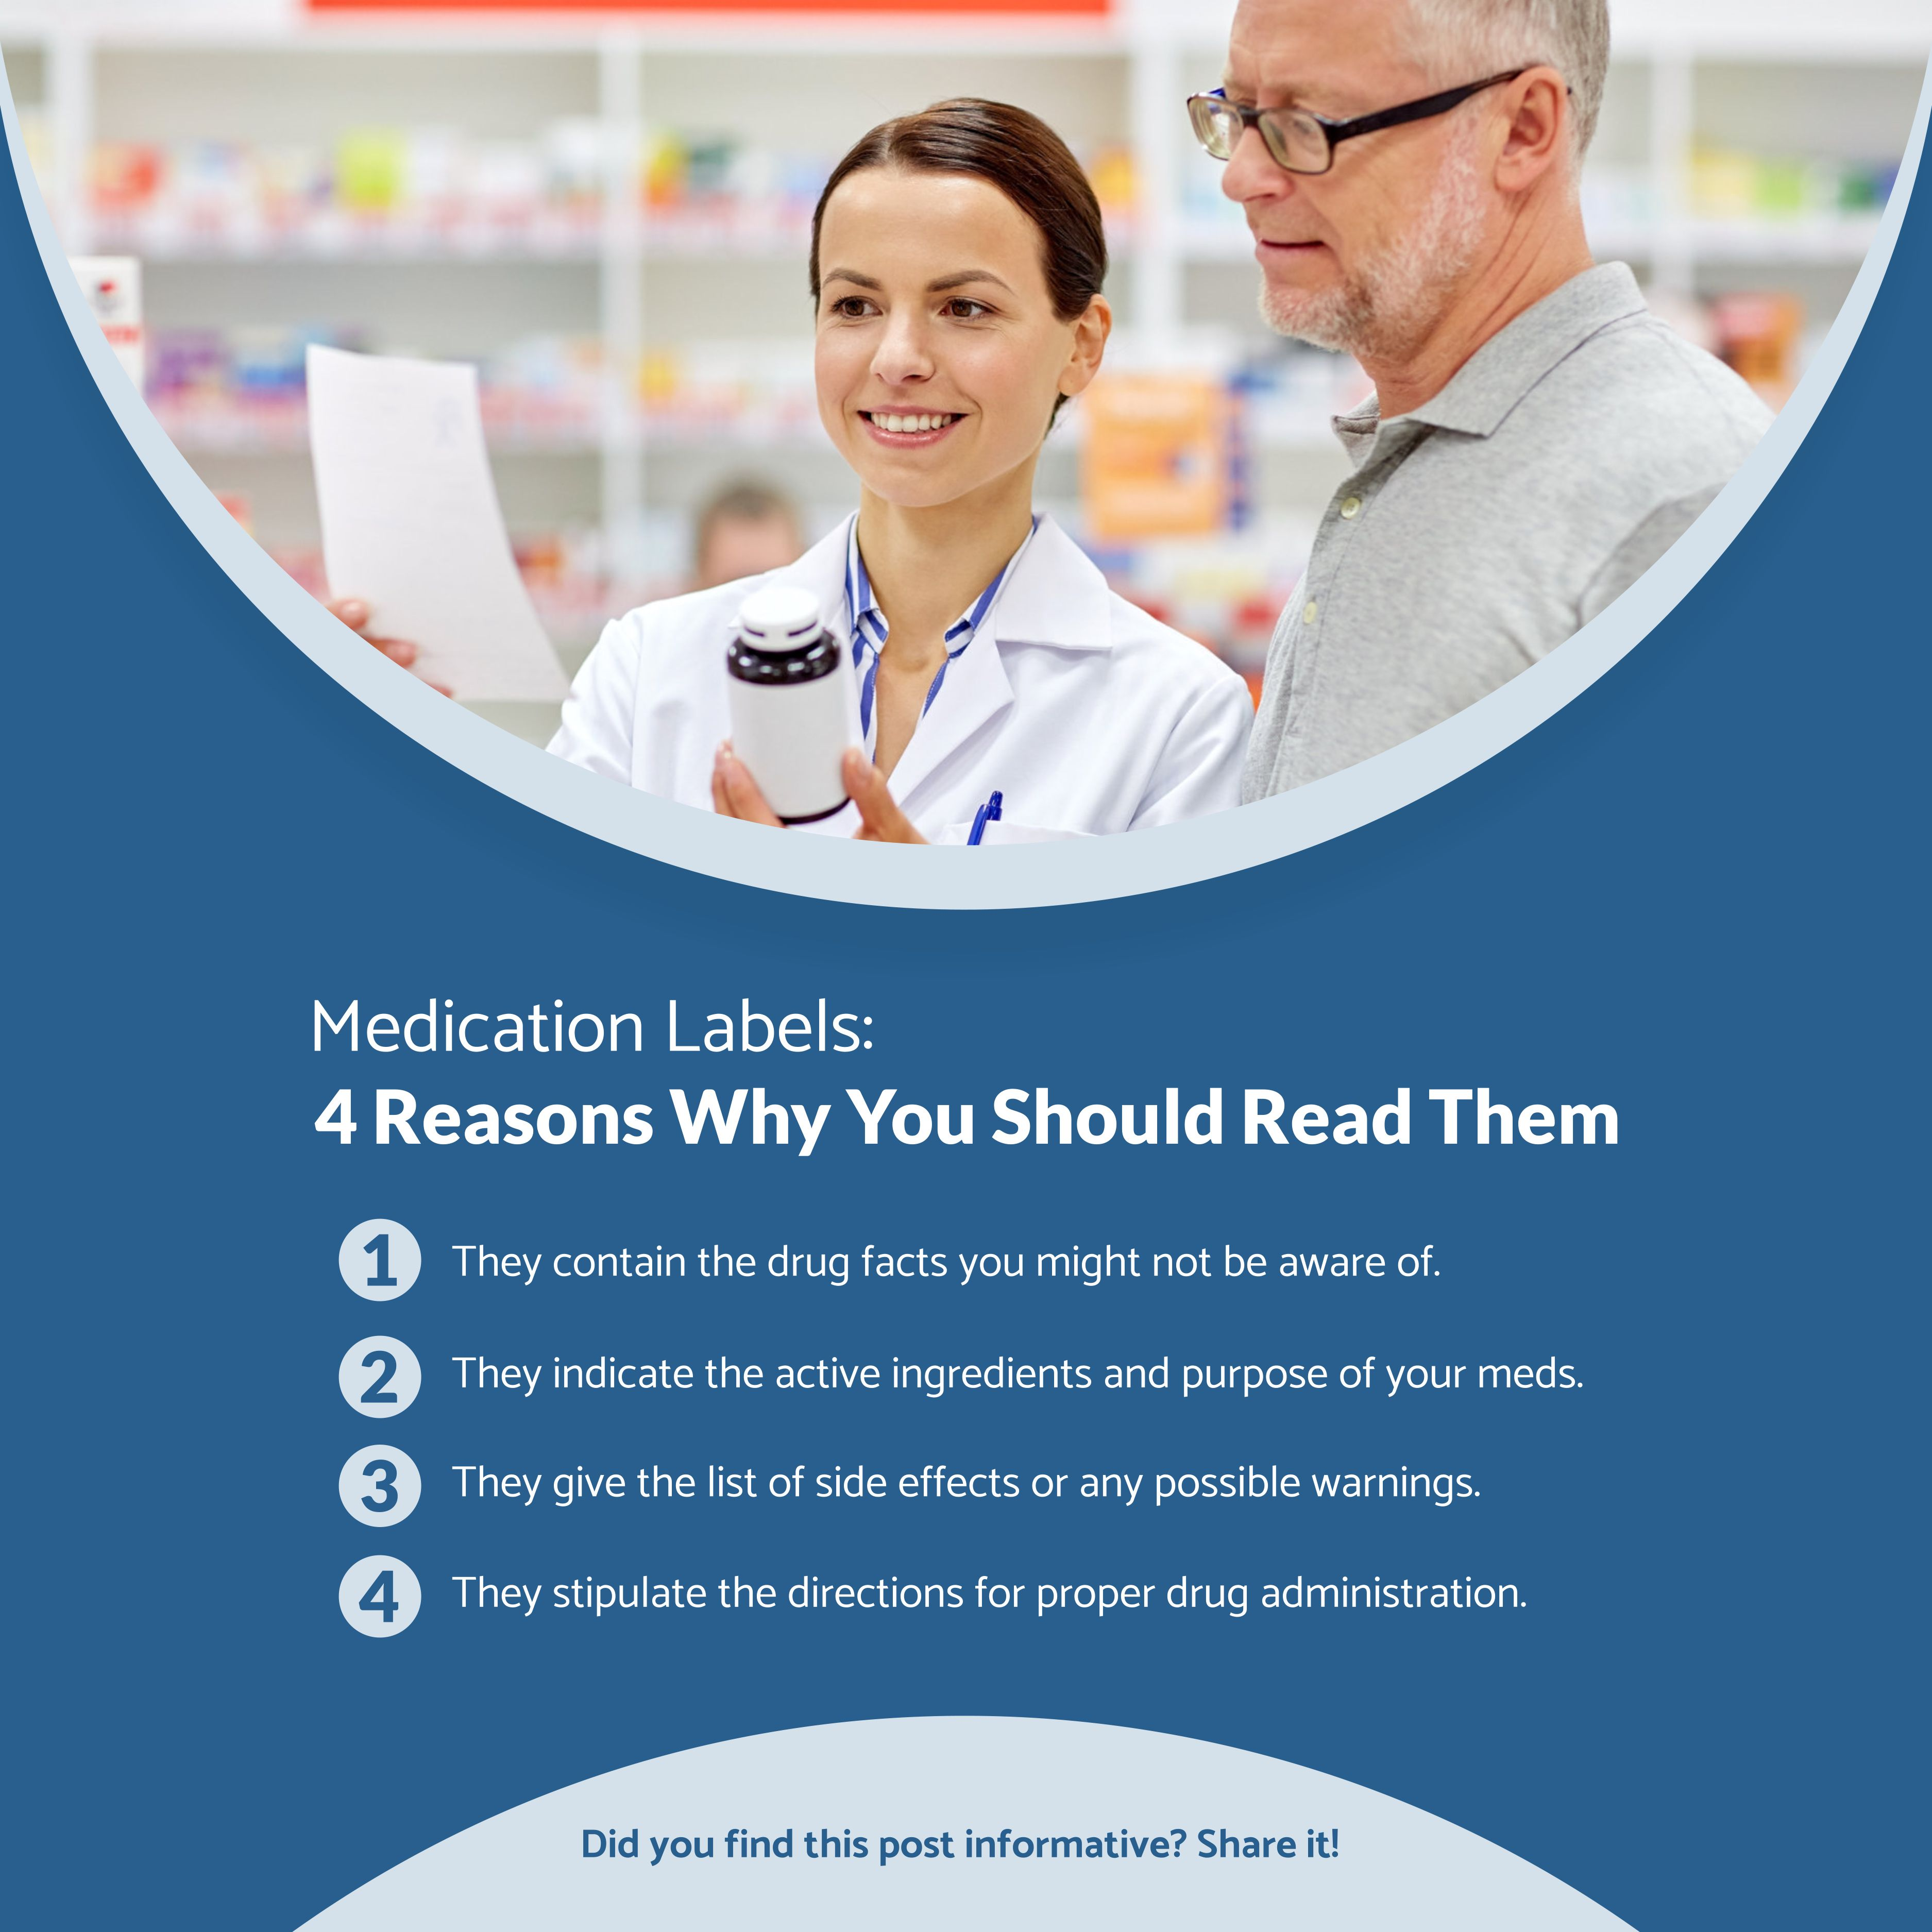 Medication Labels 4 Reasons Why You Should Read Them